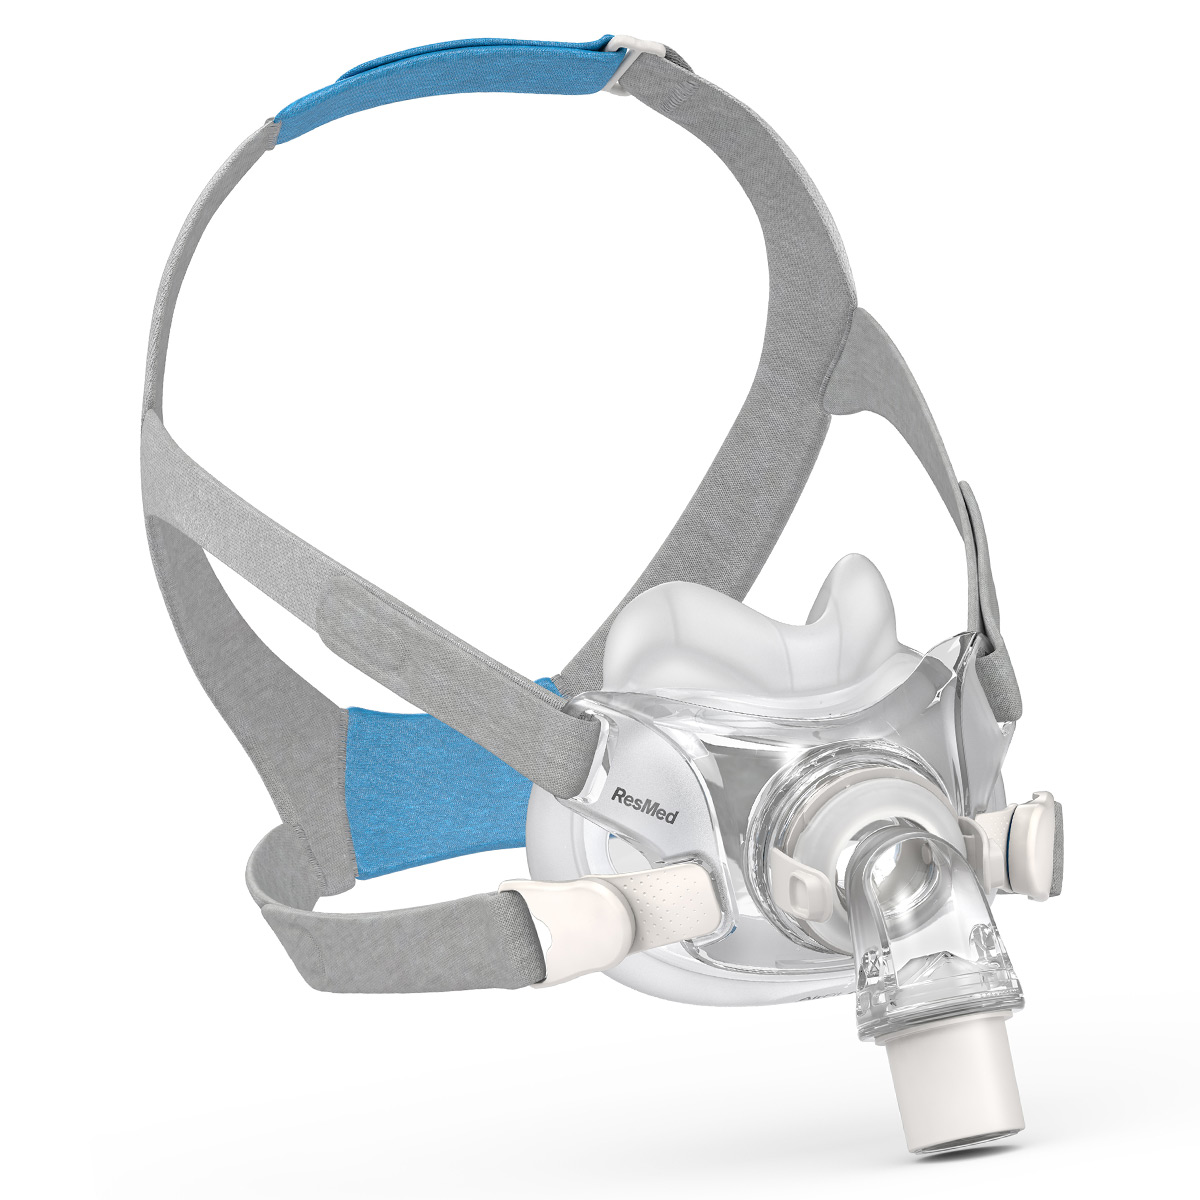 airfit-f30-full-face-cpap-mask-resmed